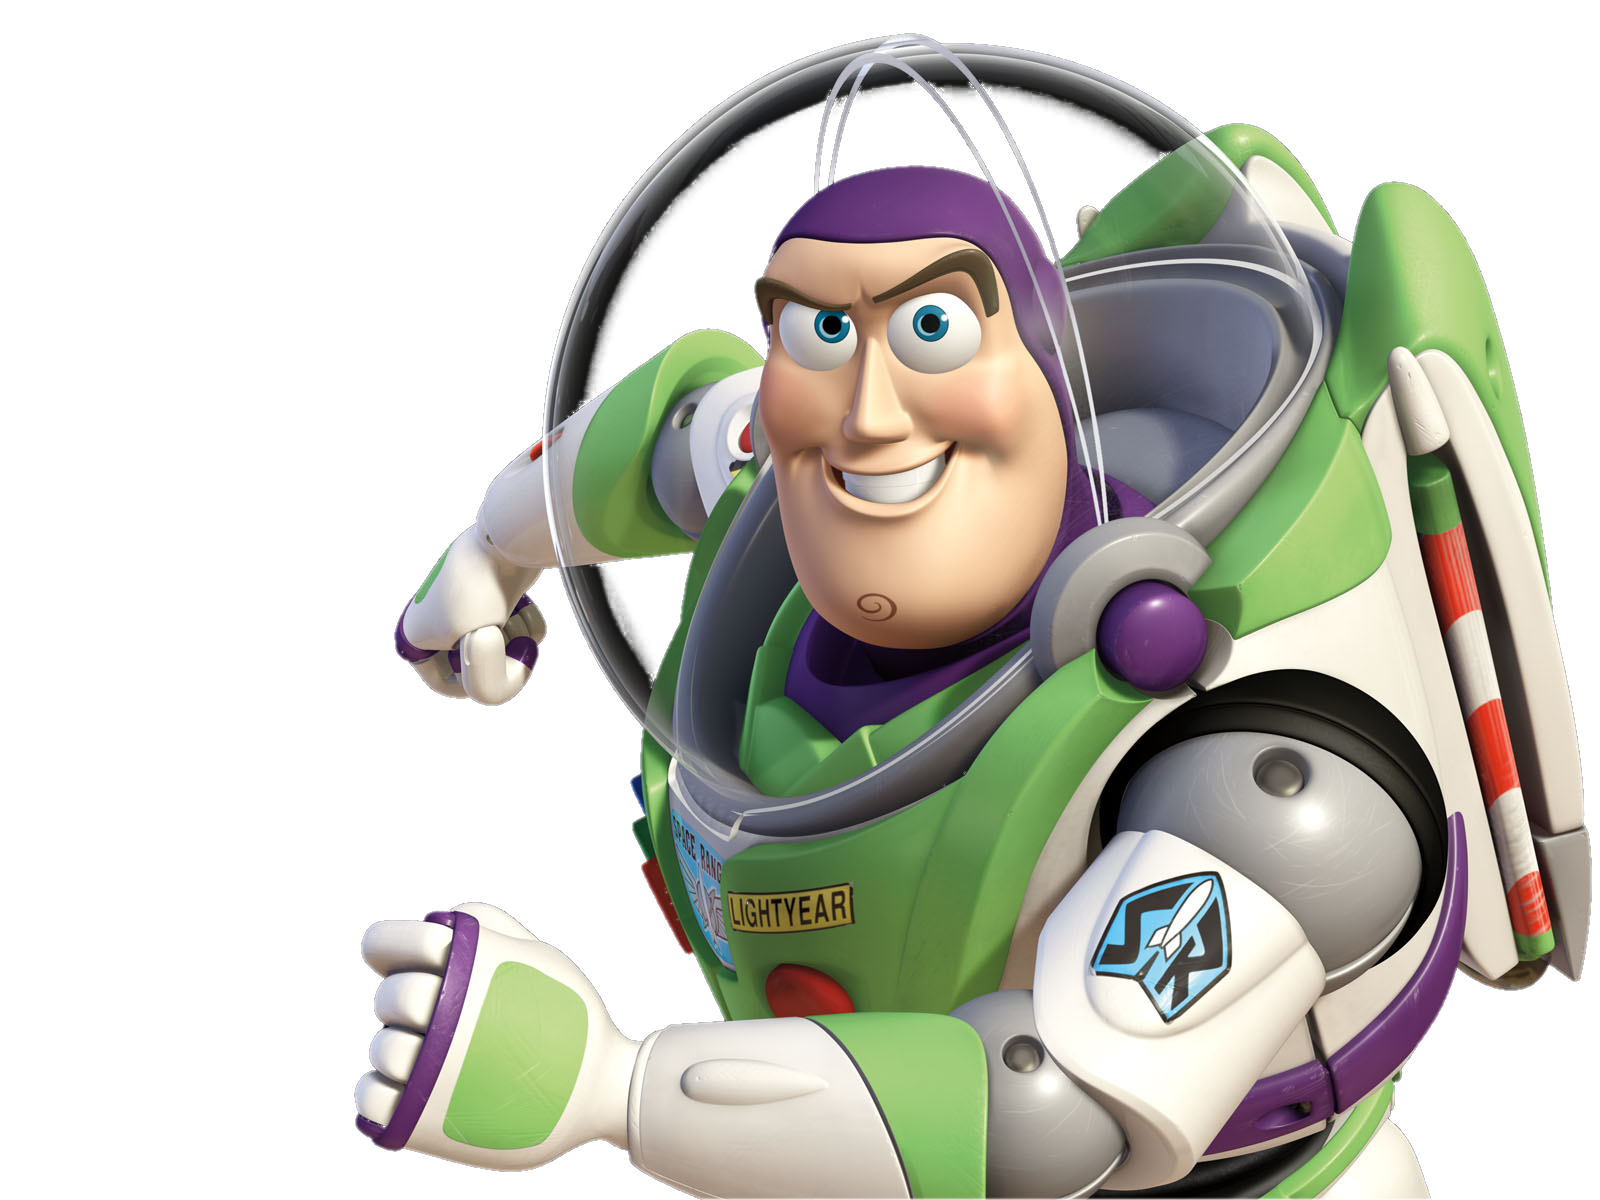 Buzz light year png. Lightyear download image mart